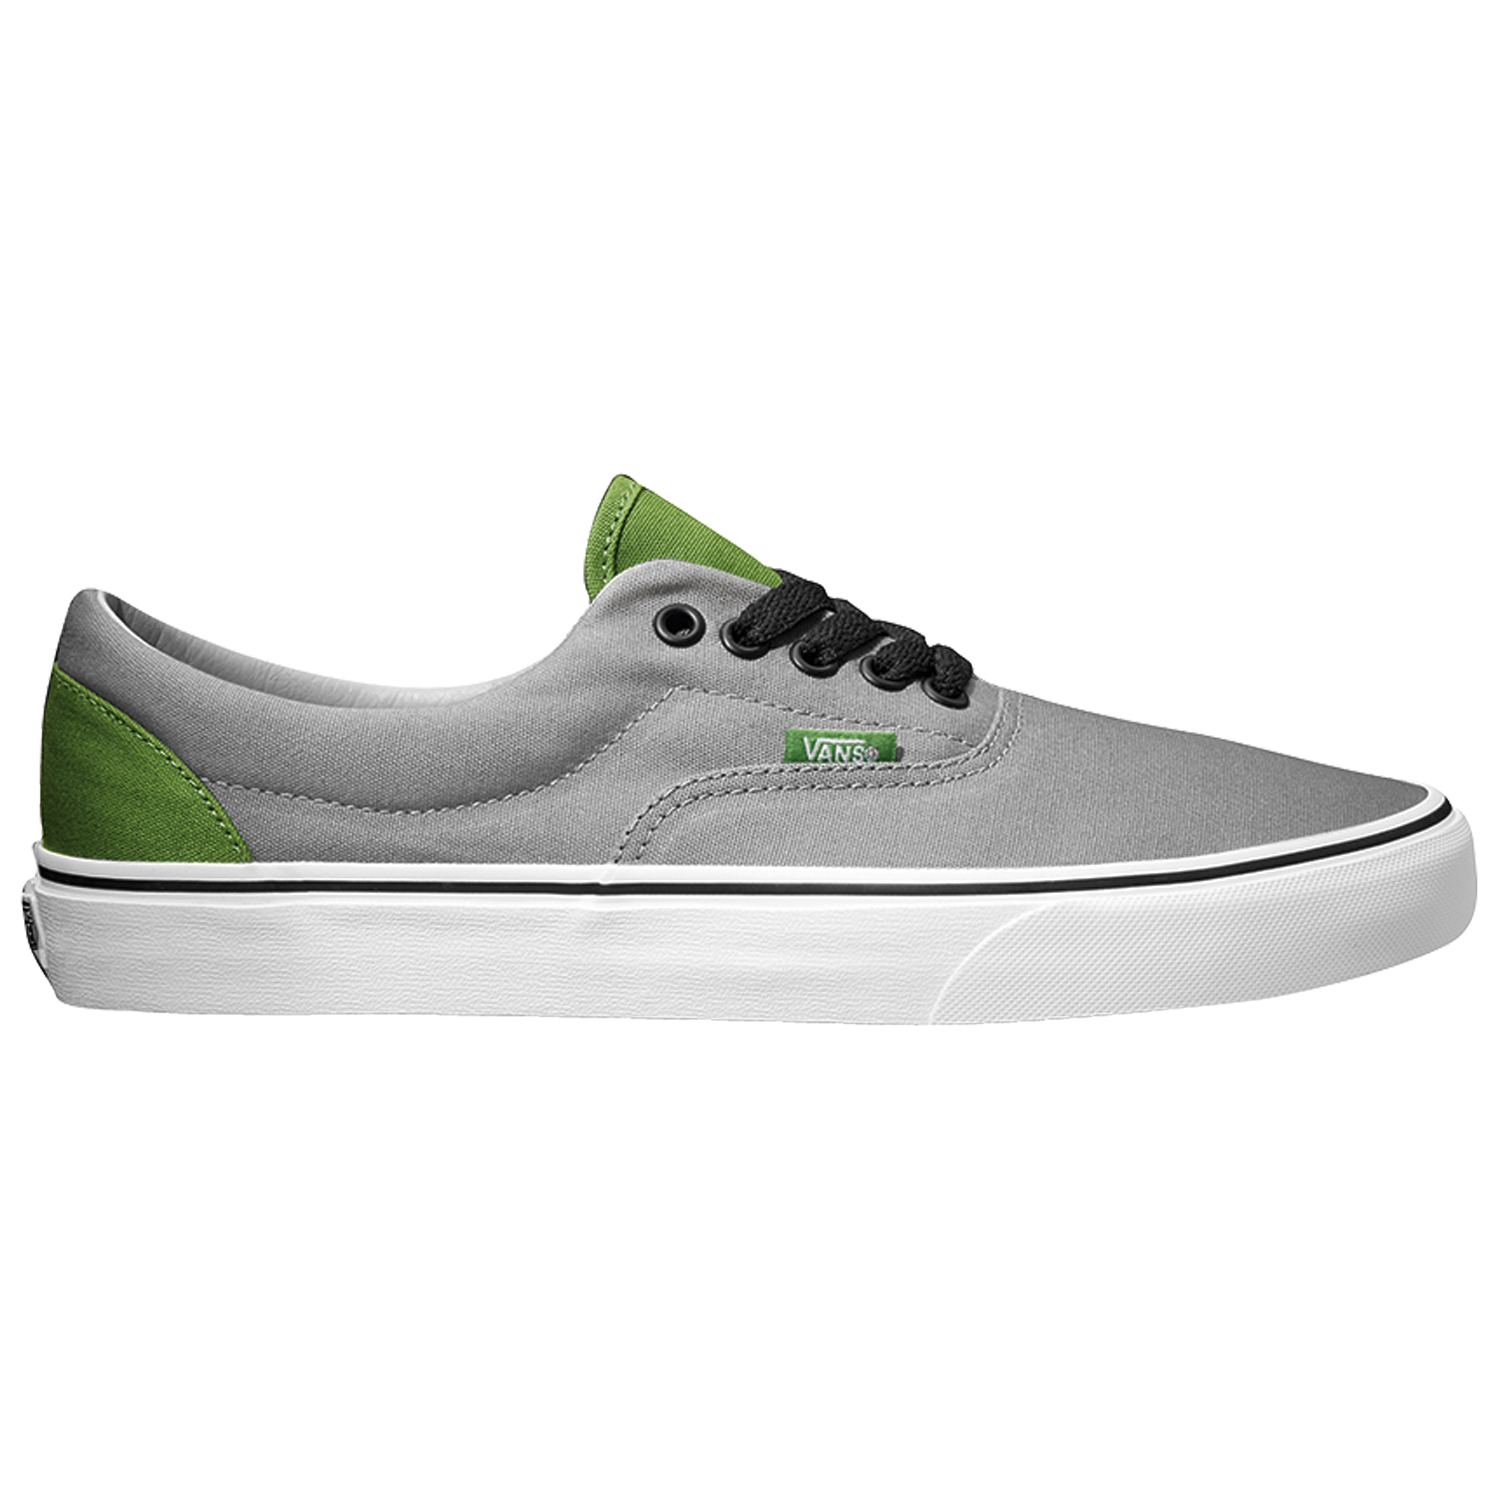 vans-era-pop-online-lime-frost-grey-99-90